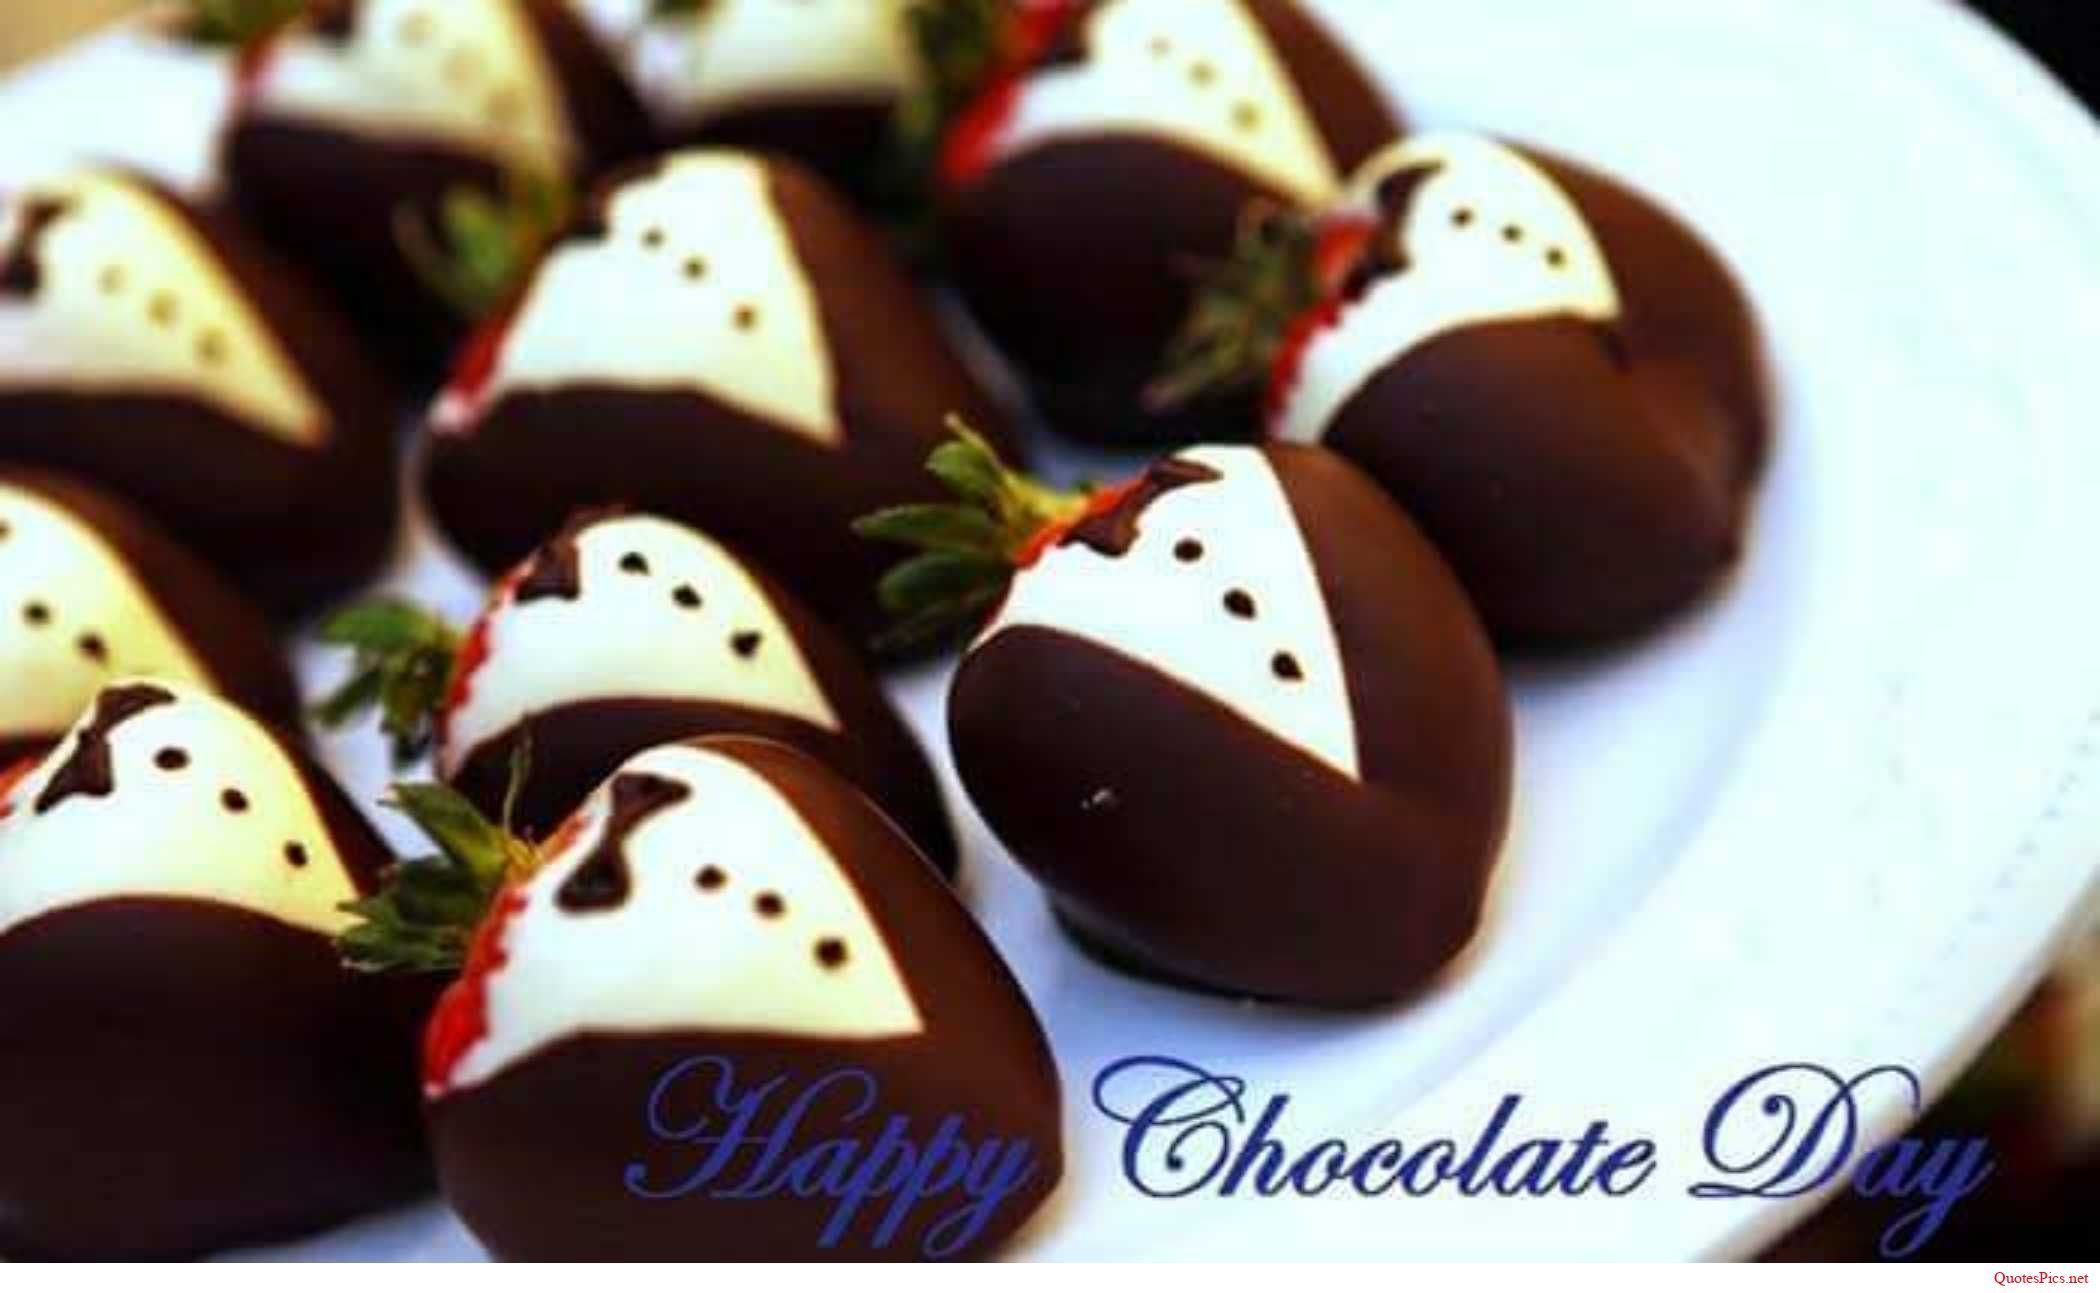 Happy Chocolate Day amazing choco wallpaper wish for dear handsome